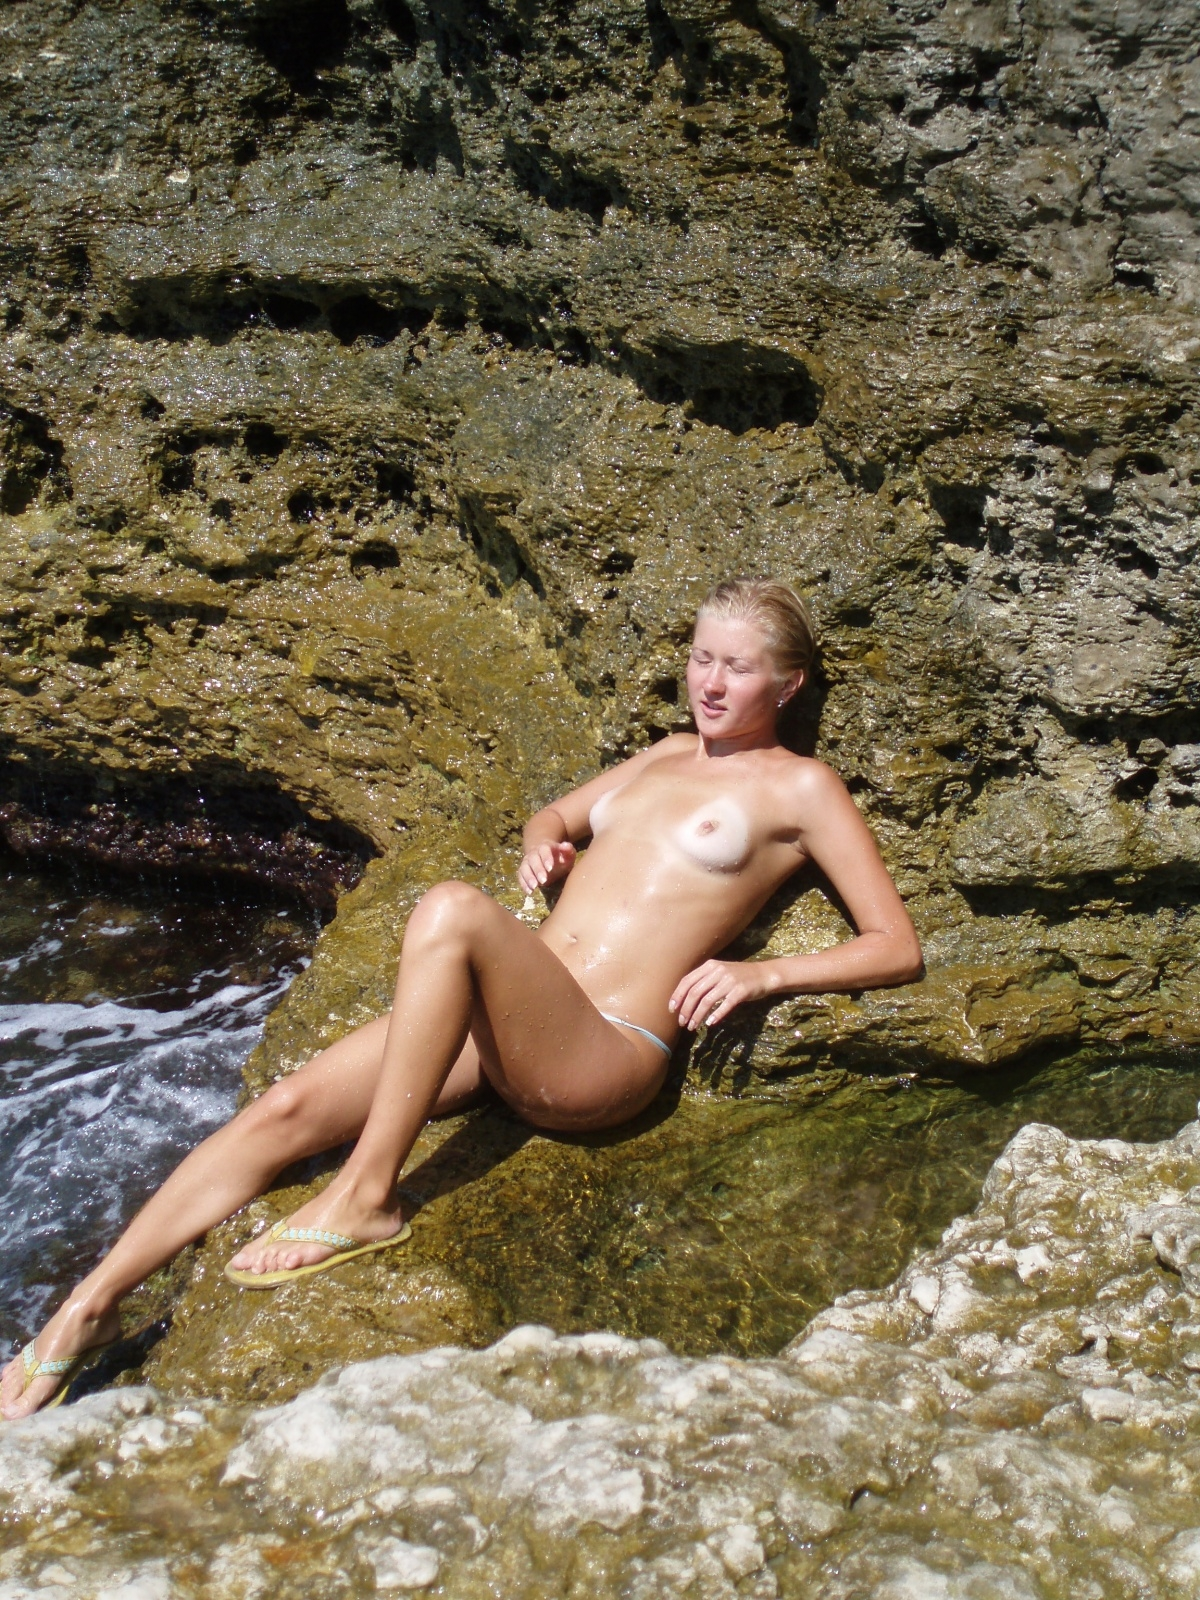 Topless sexiness tanning on a rocky beach